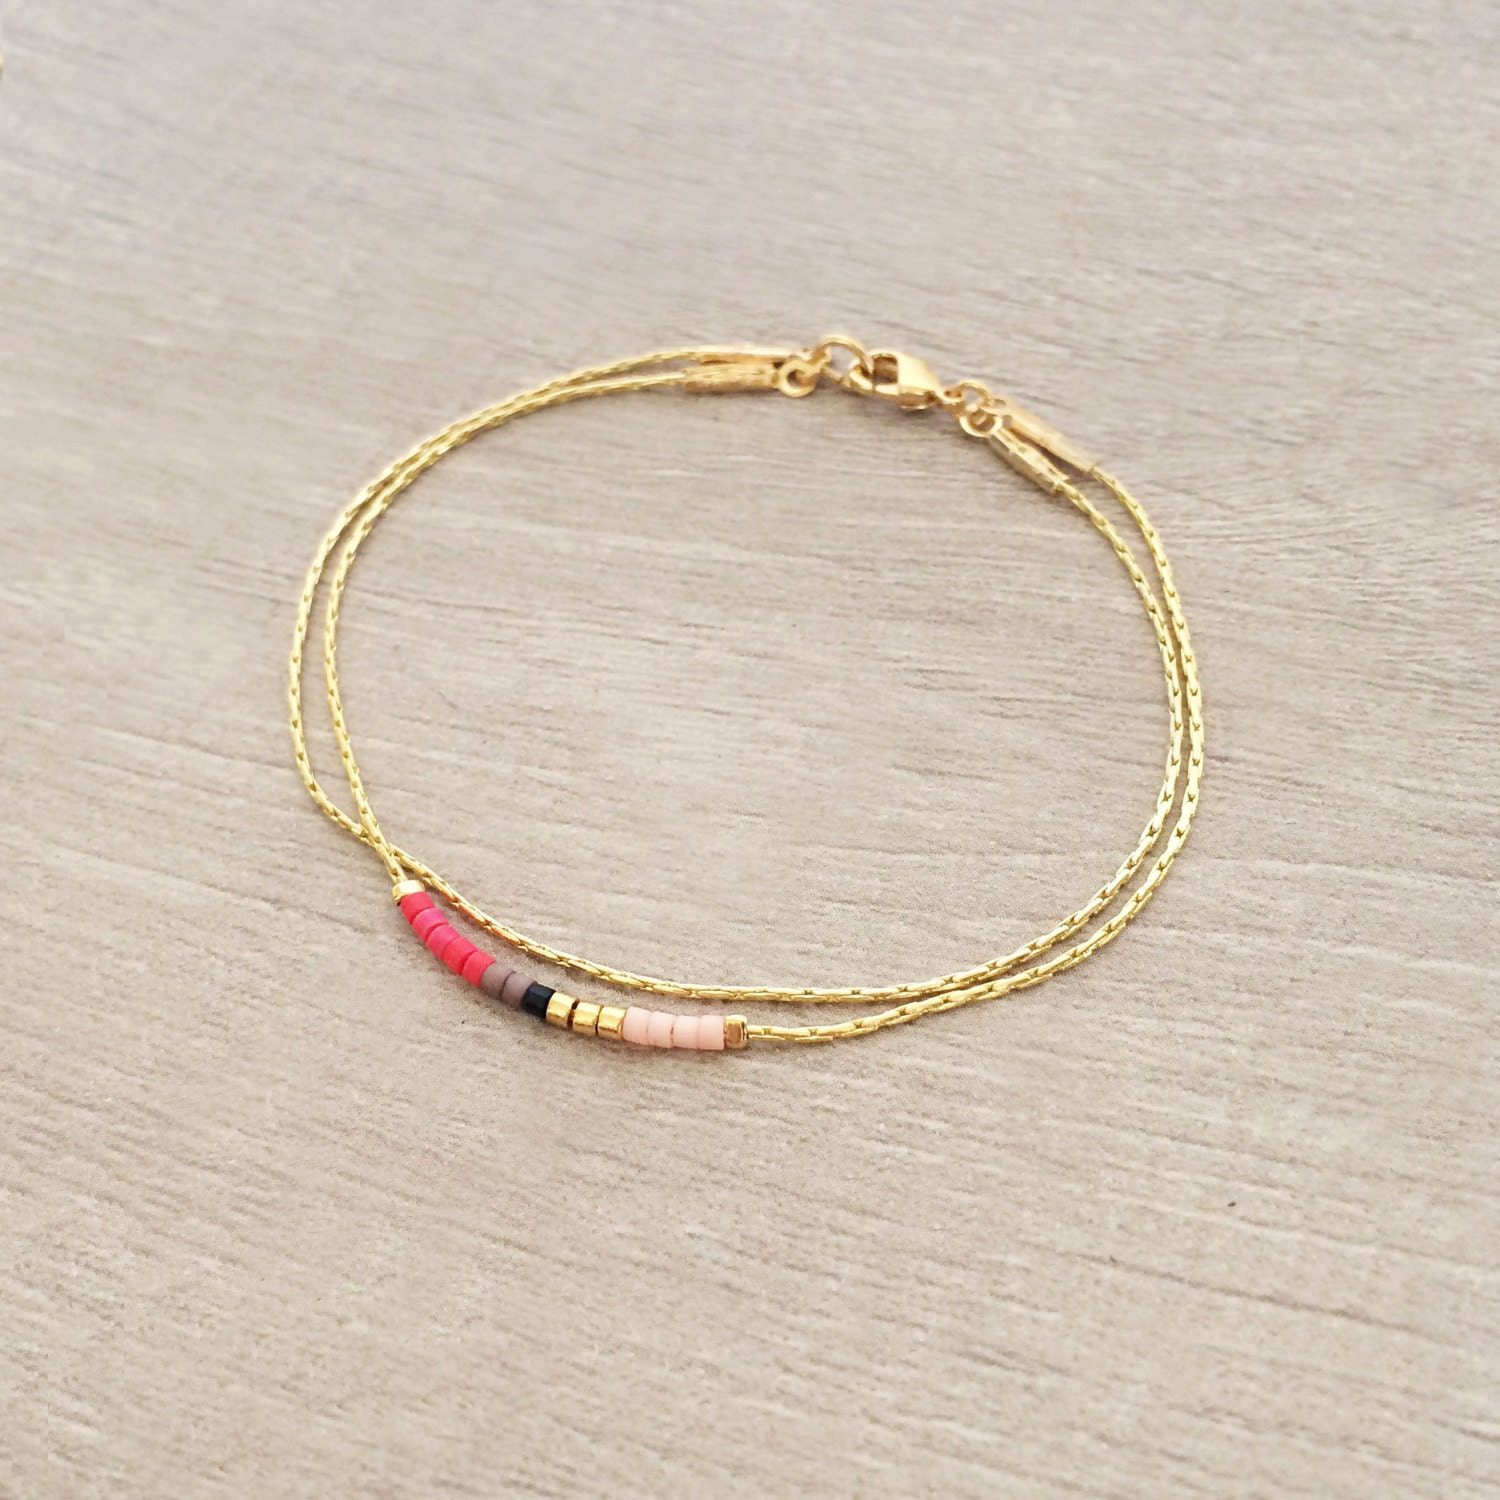 en boutique happiness bracelets steel stainless gold bracelet delicate